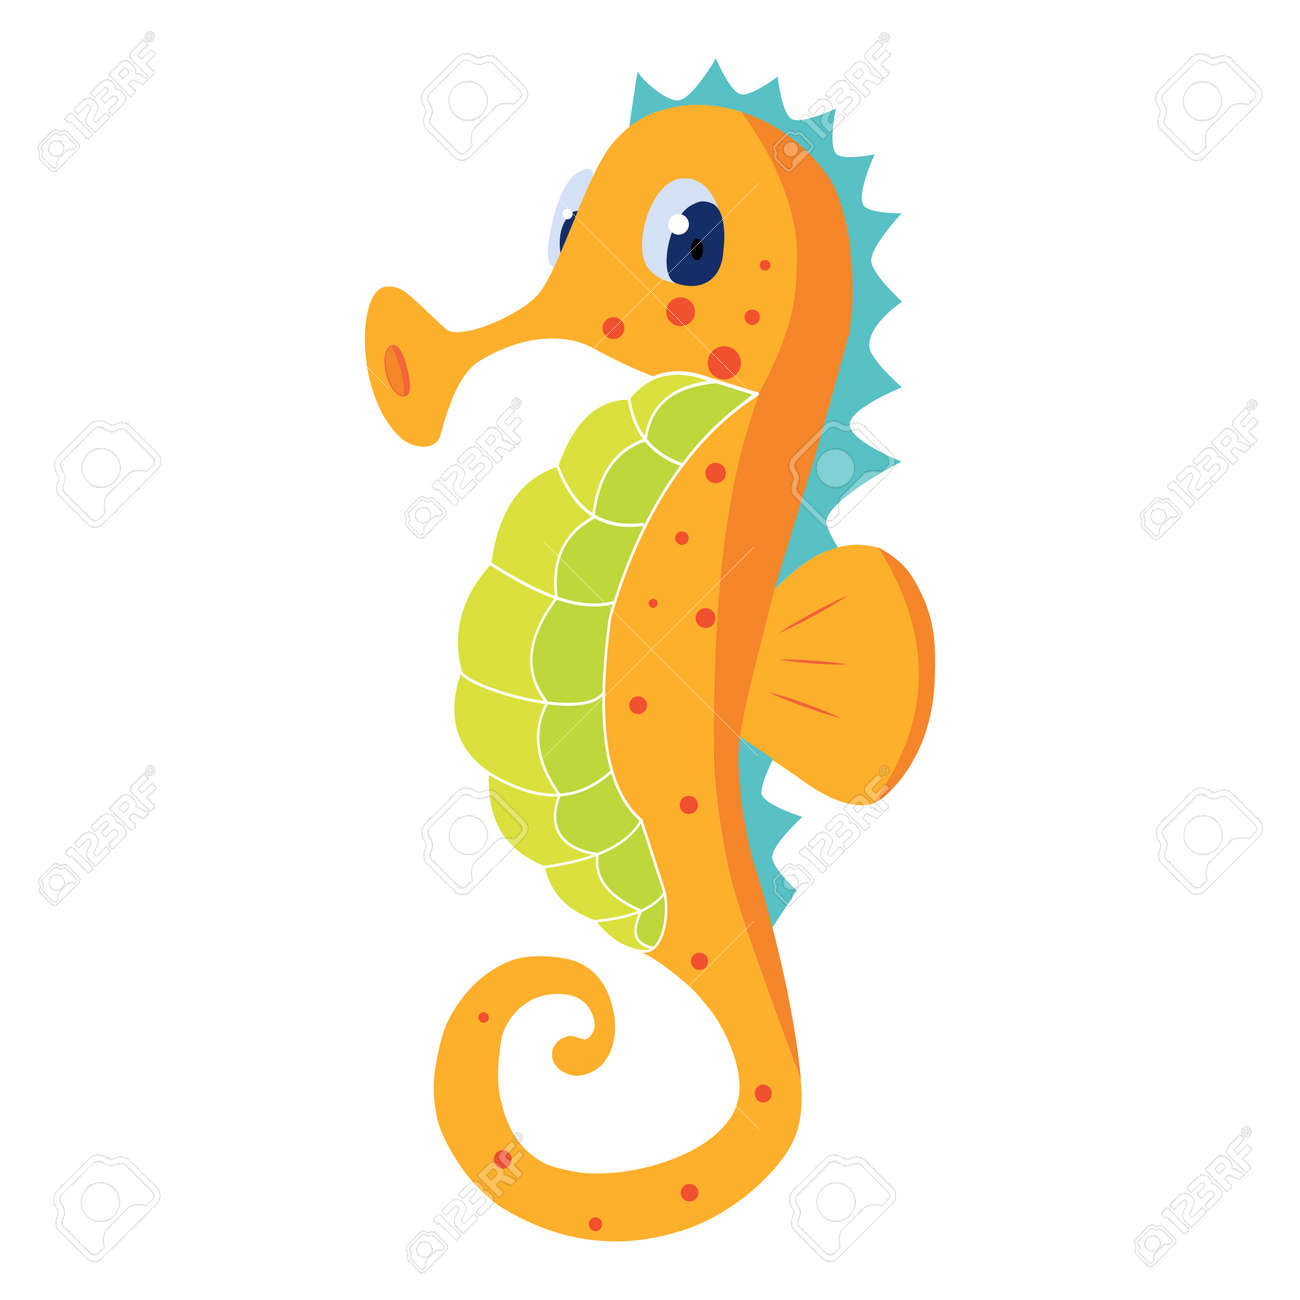 Seahorse Vector Image Royalty Free Cliparts Vectors And Stock Illustration Image 100872762